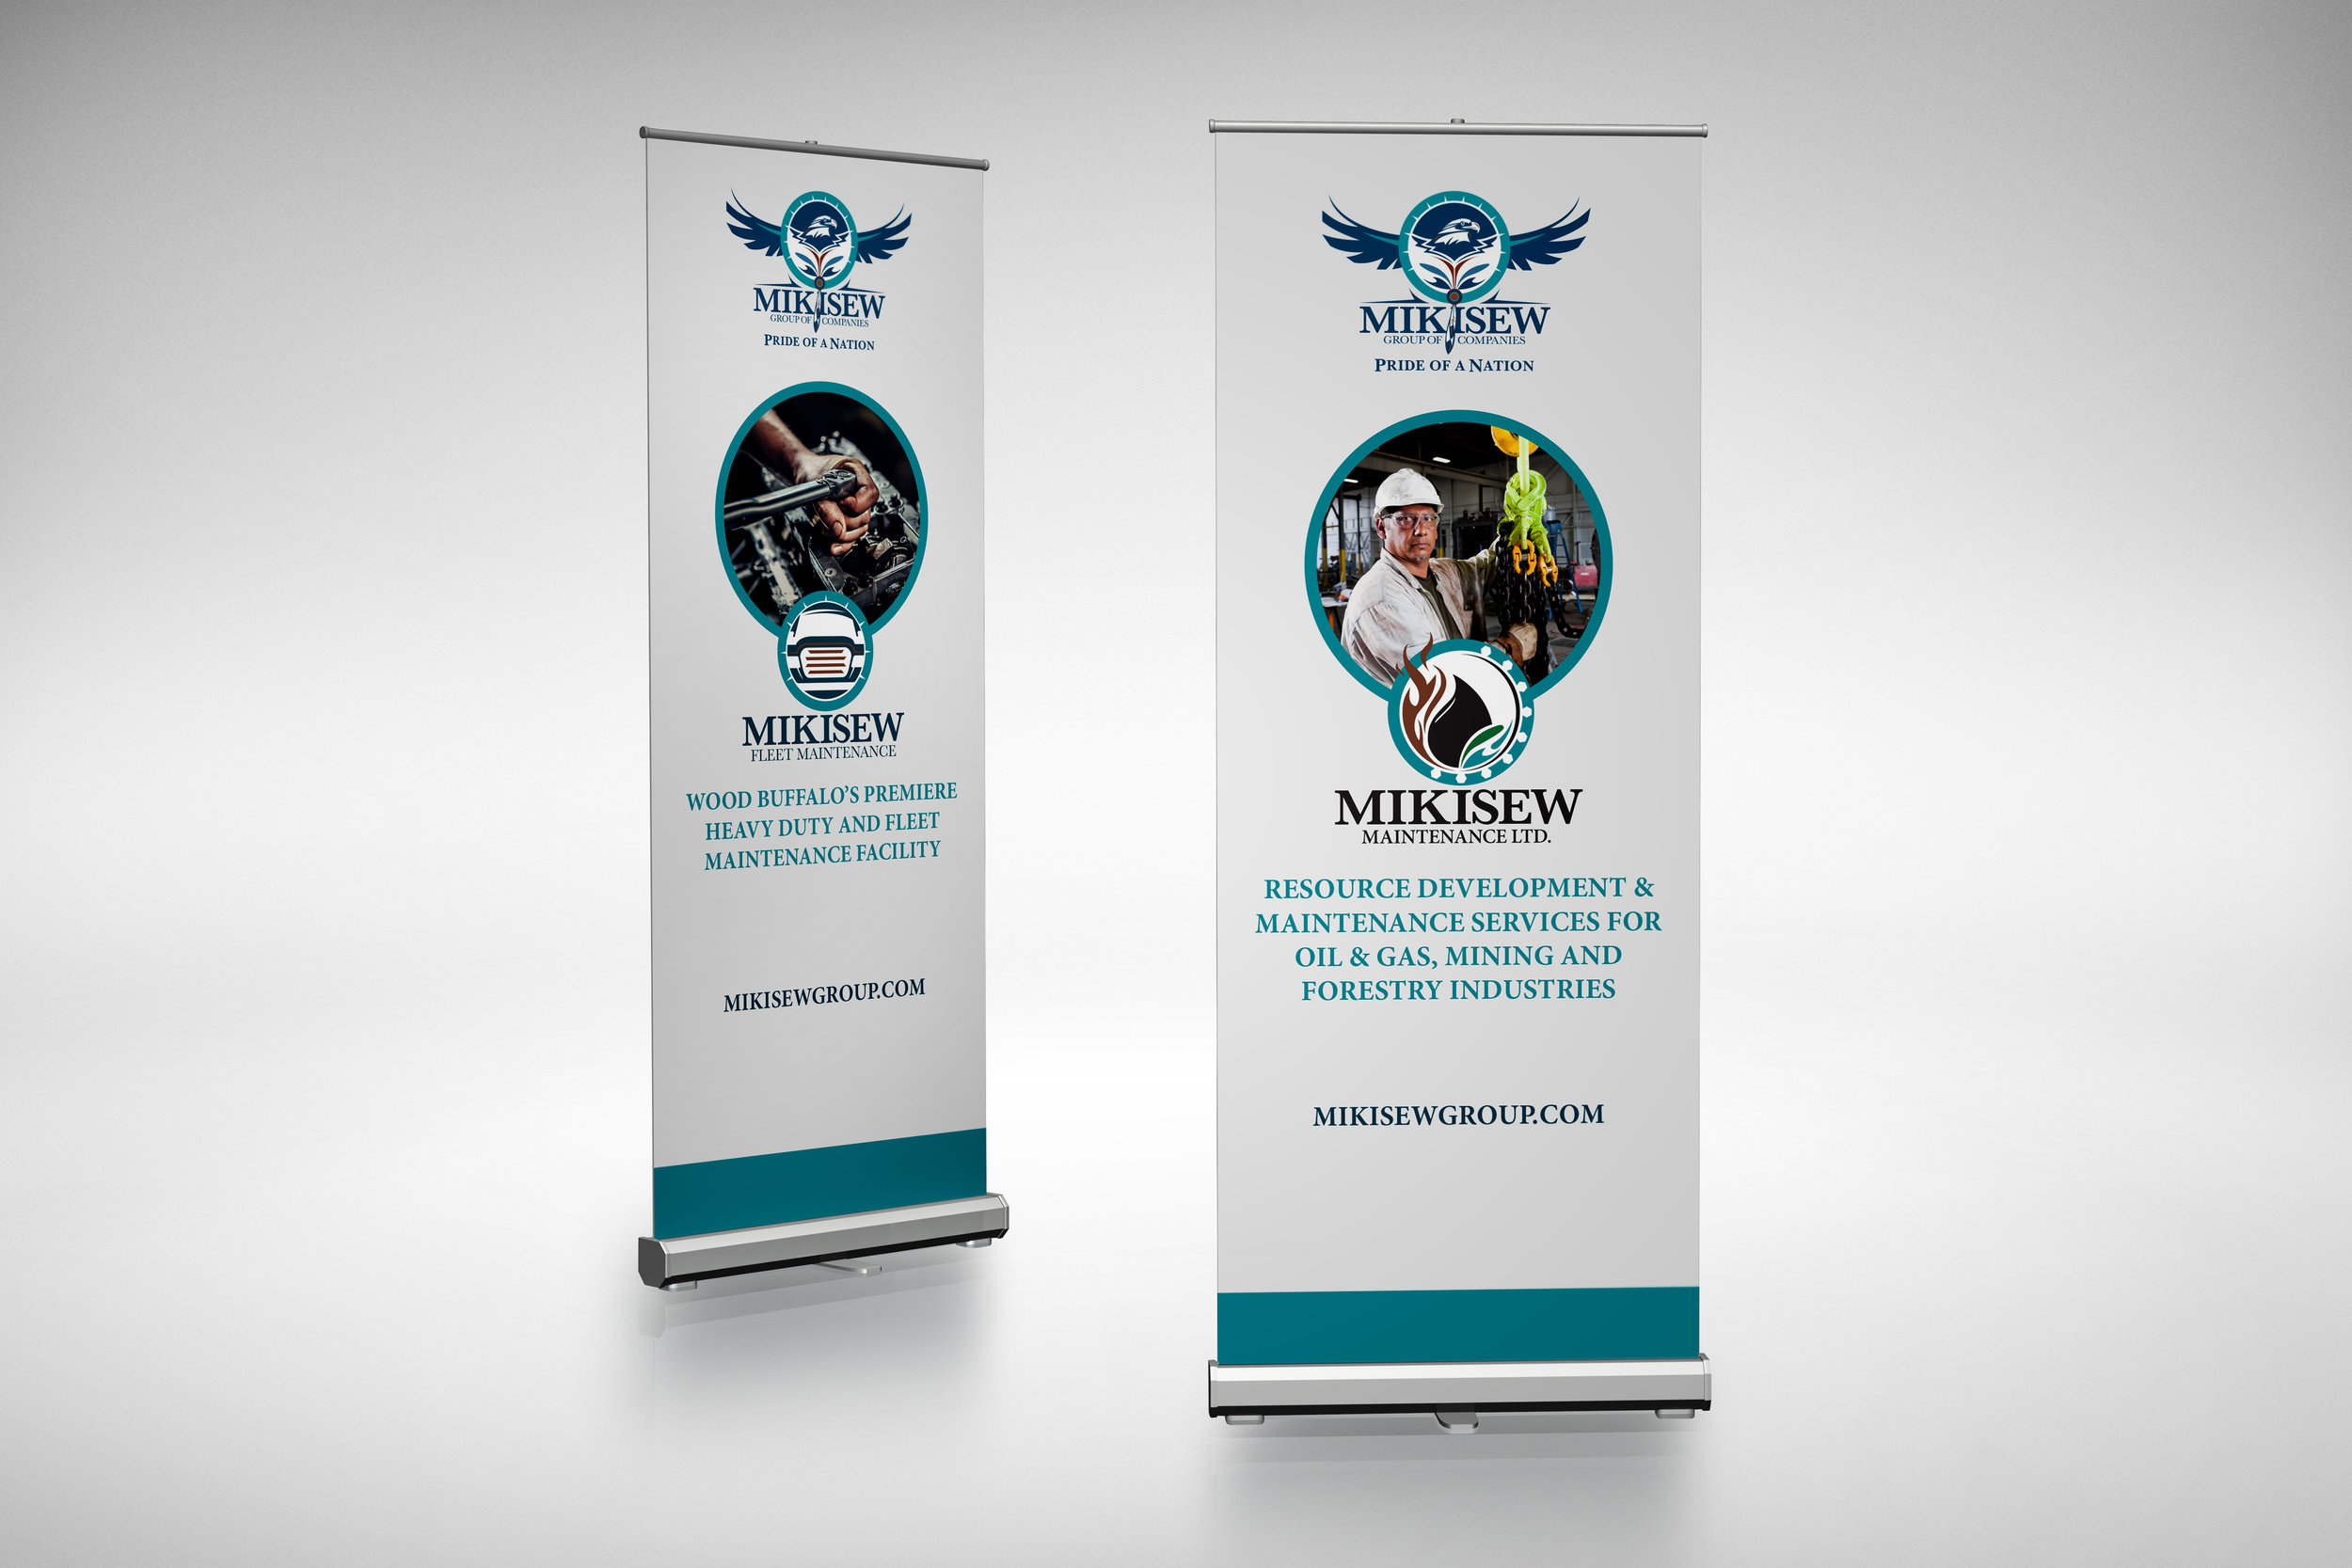 mikisew-standup-banners.jpg